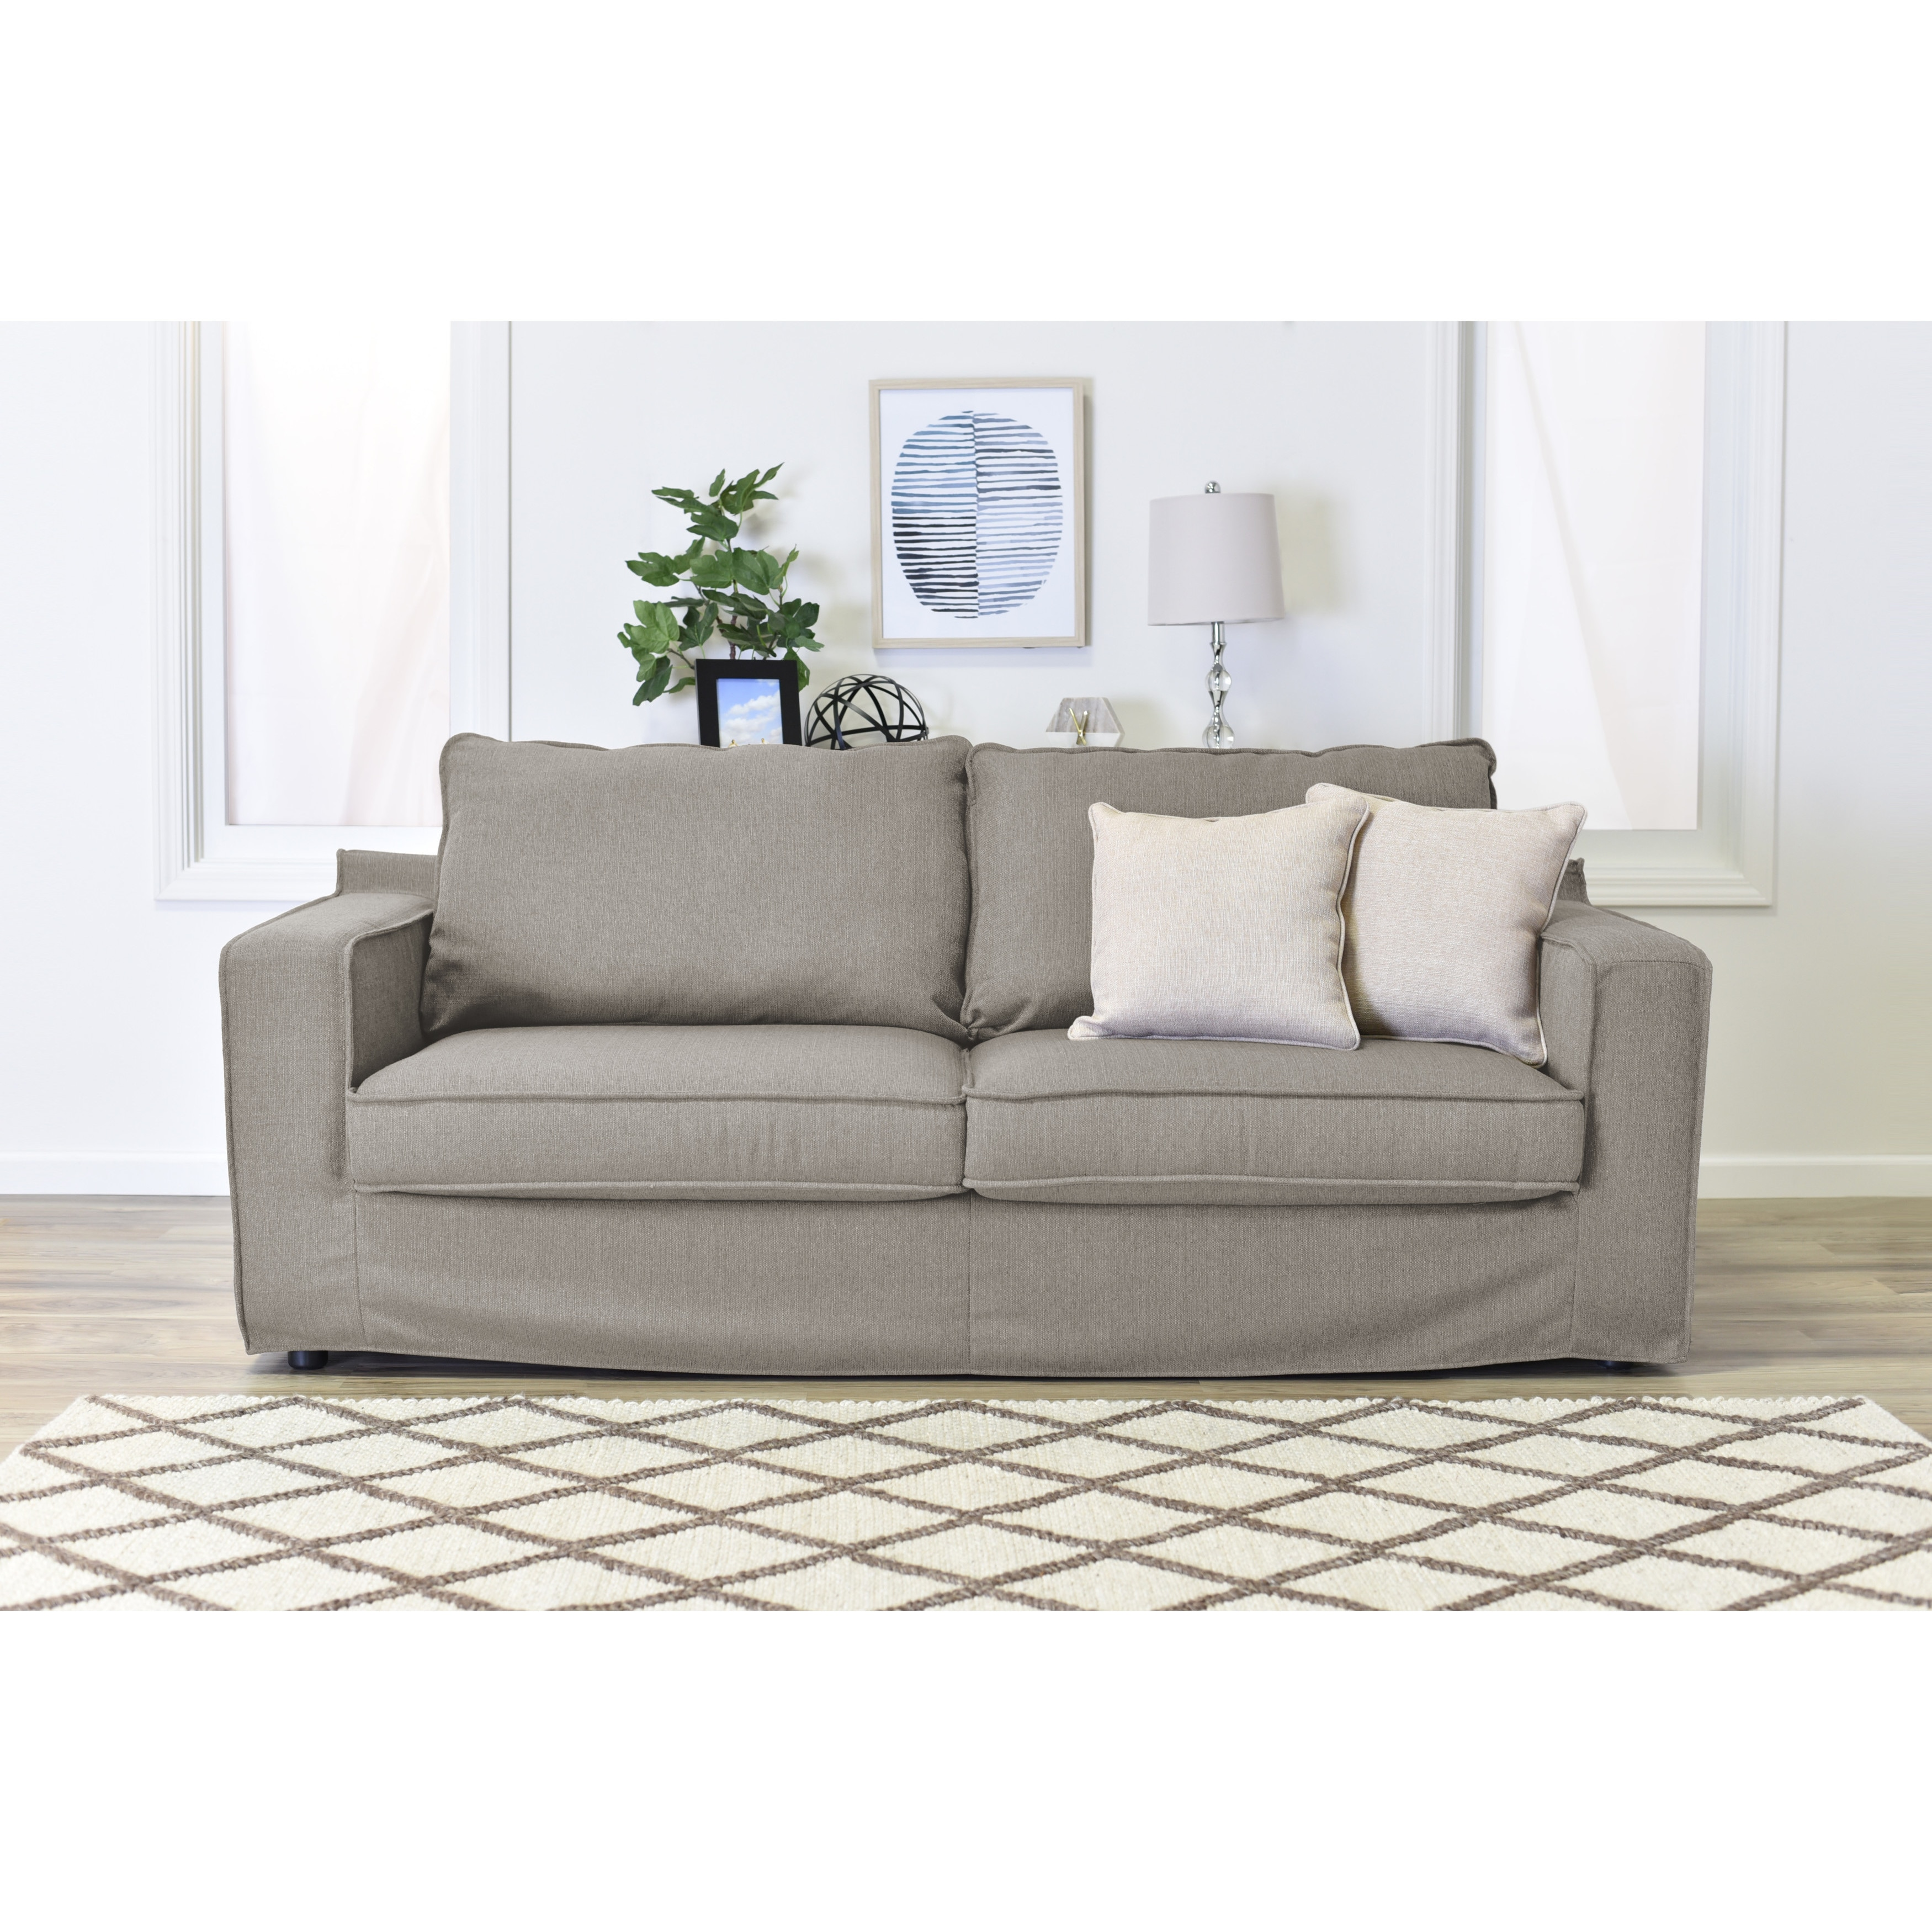 Serta Colton Fabric 85-inch Sofa with Slipcover - Free Shipping ...